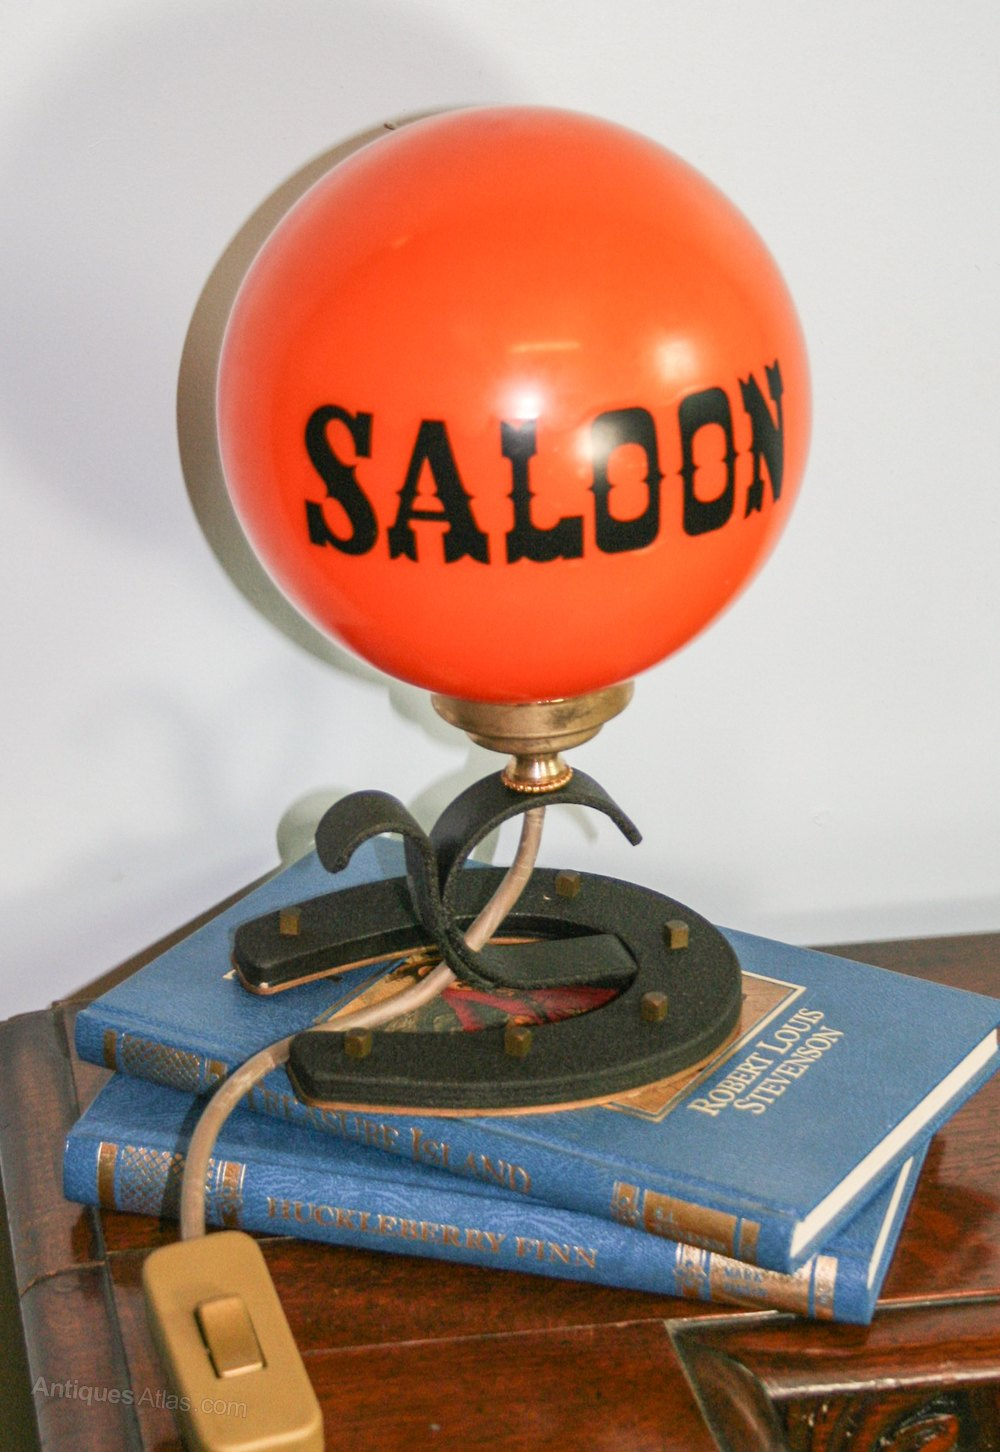 Antiques Atlas - Novelty 1960s Saloon Small Table Lamp